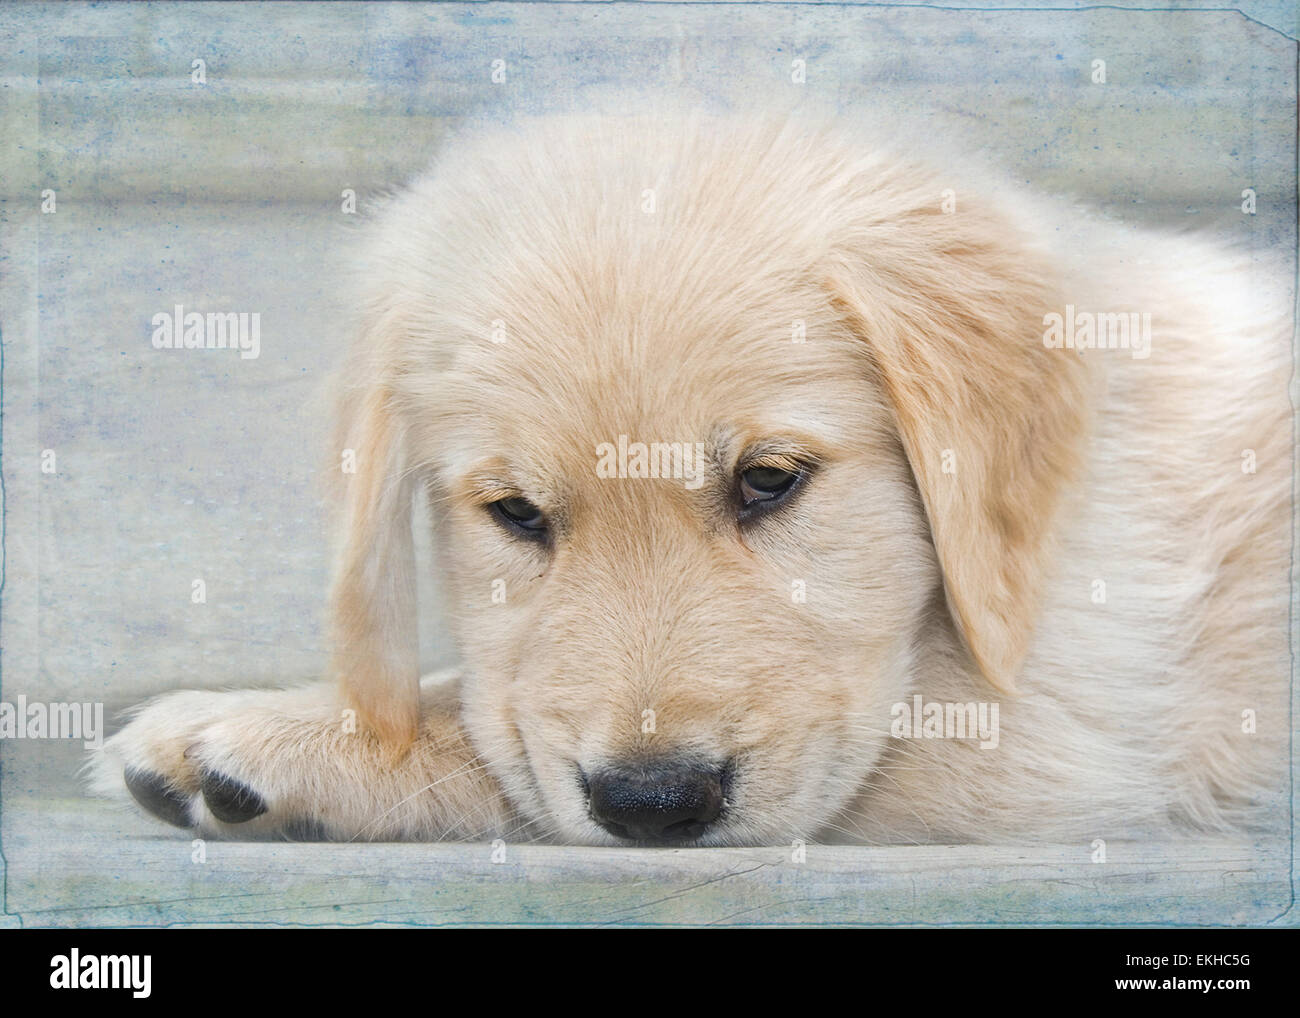 Golden retriever puppy on wooden step with soft texture overlay. - Stock Image